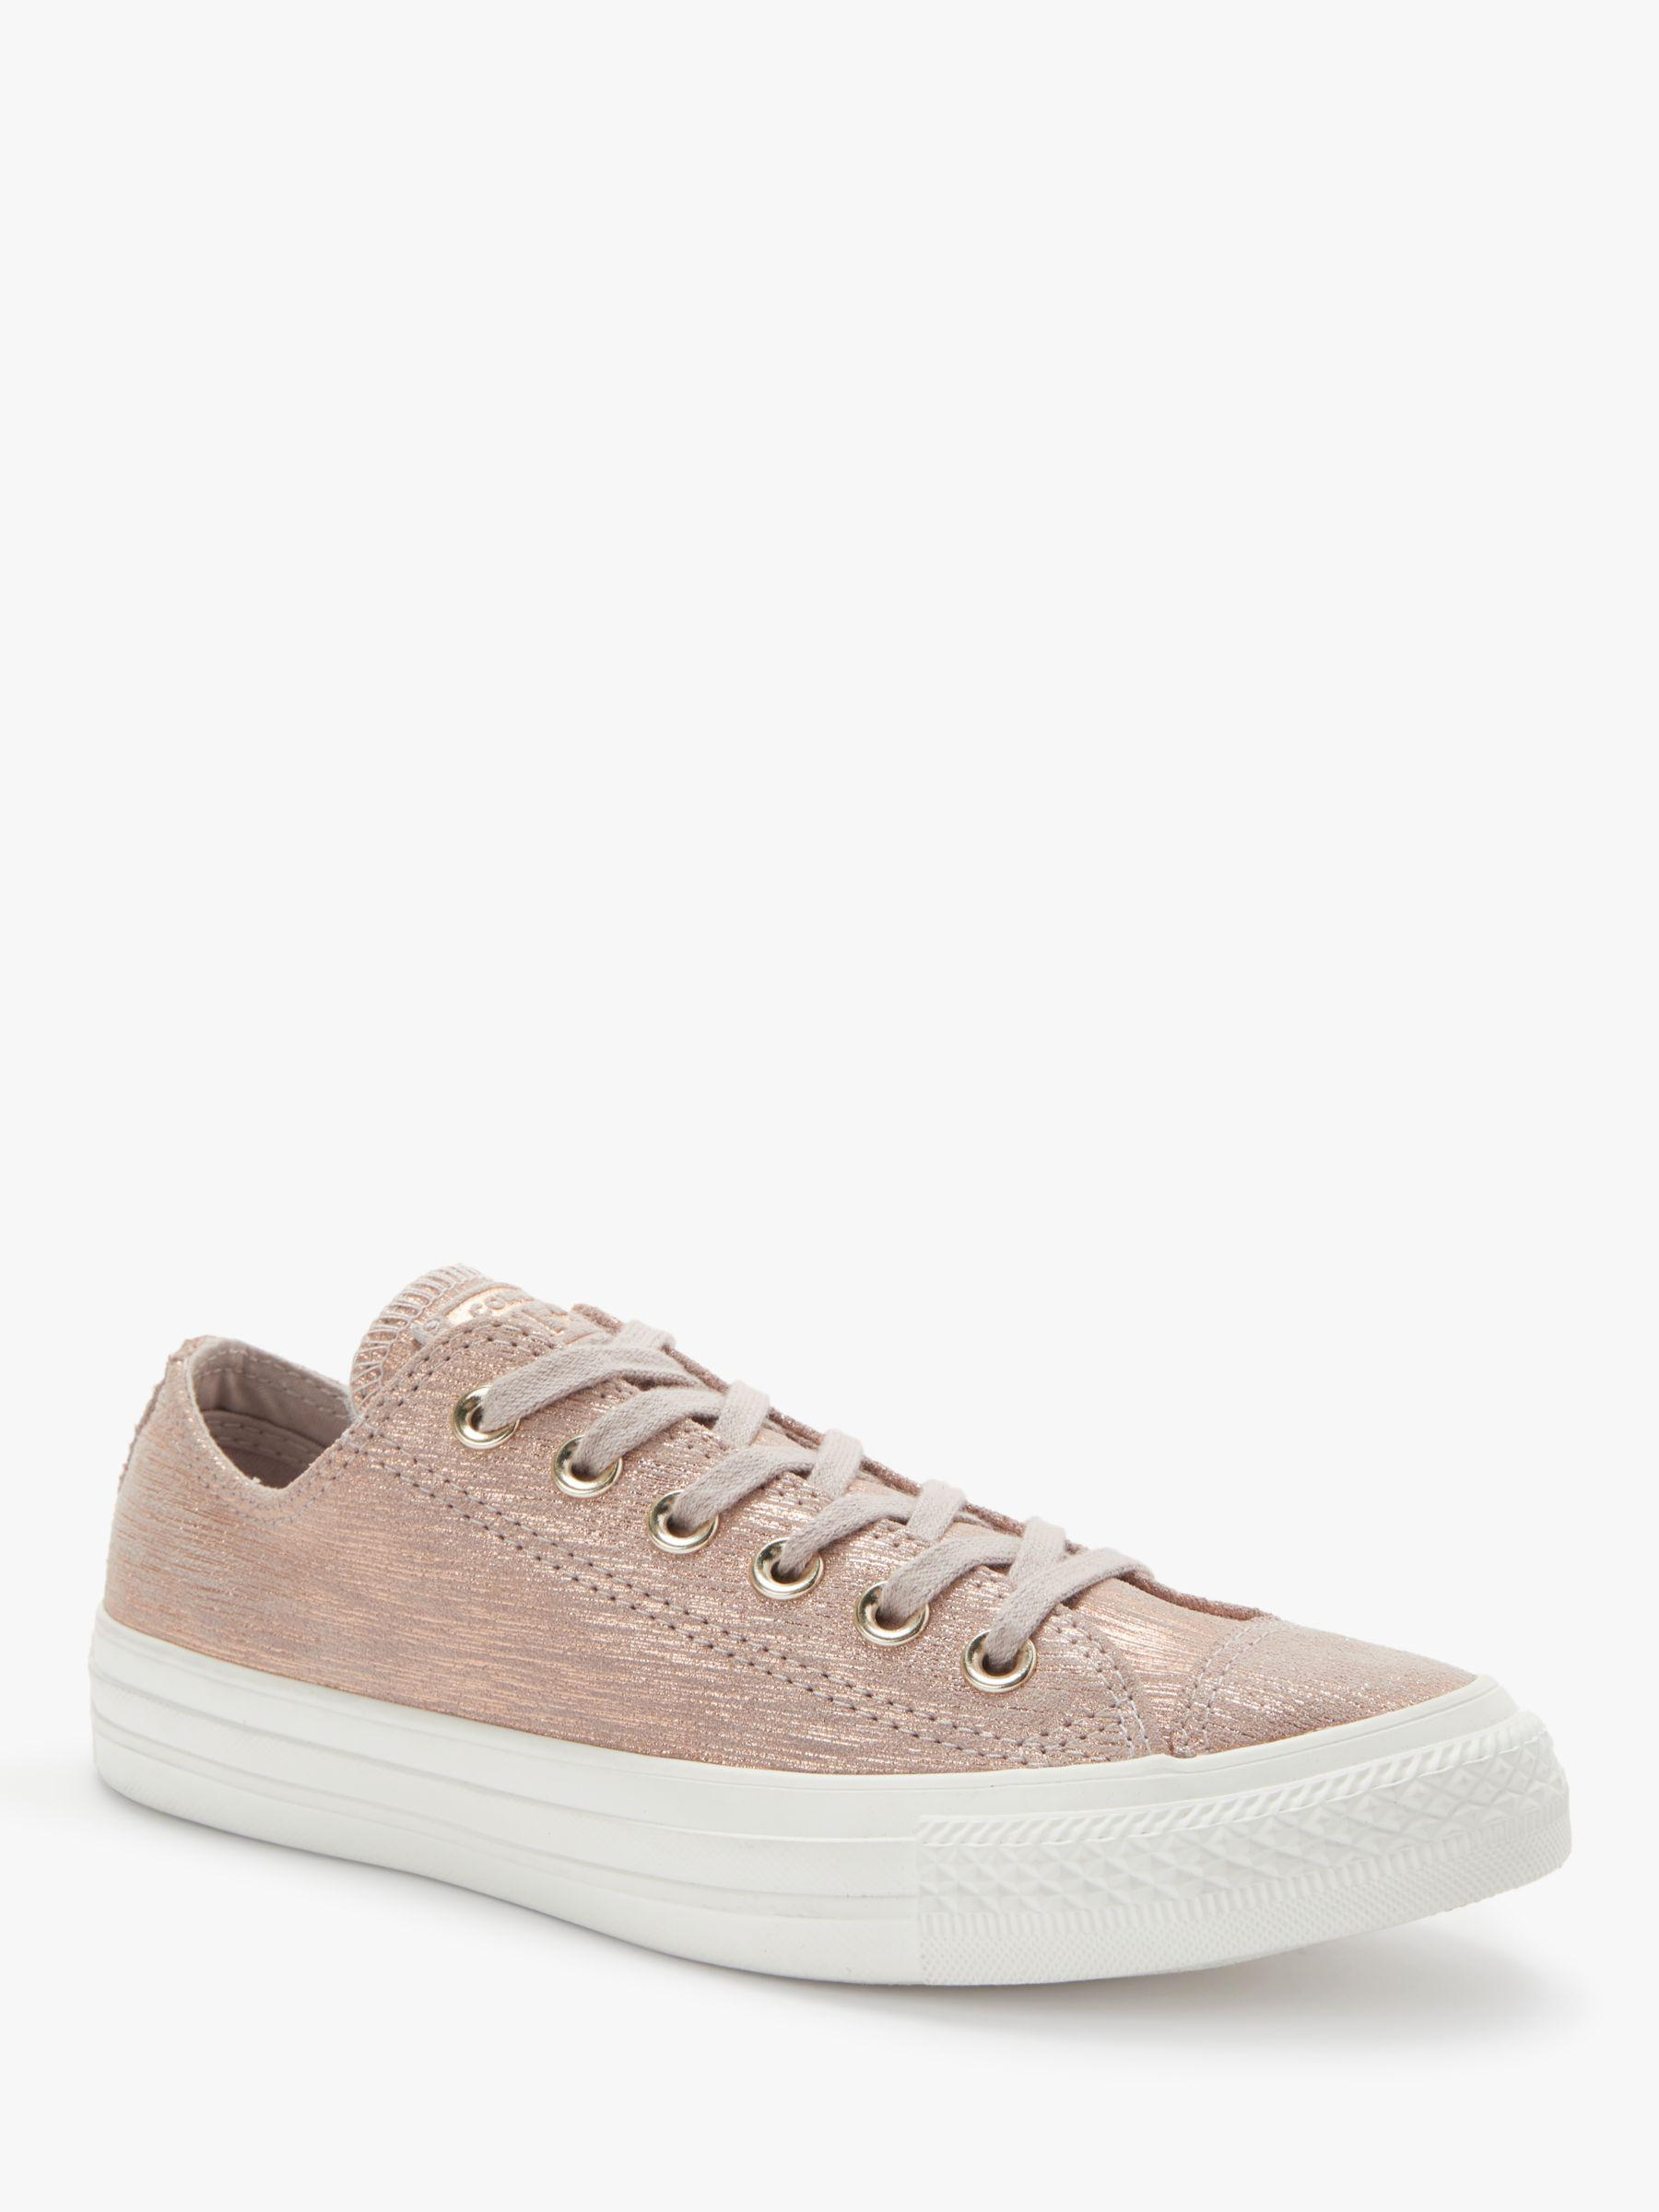 67b7d0474af8 Converse Chuck Taylor All Star Ox Precious Trainers - Lyst